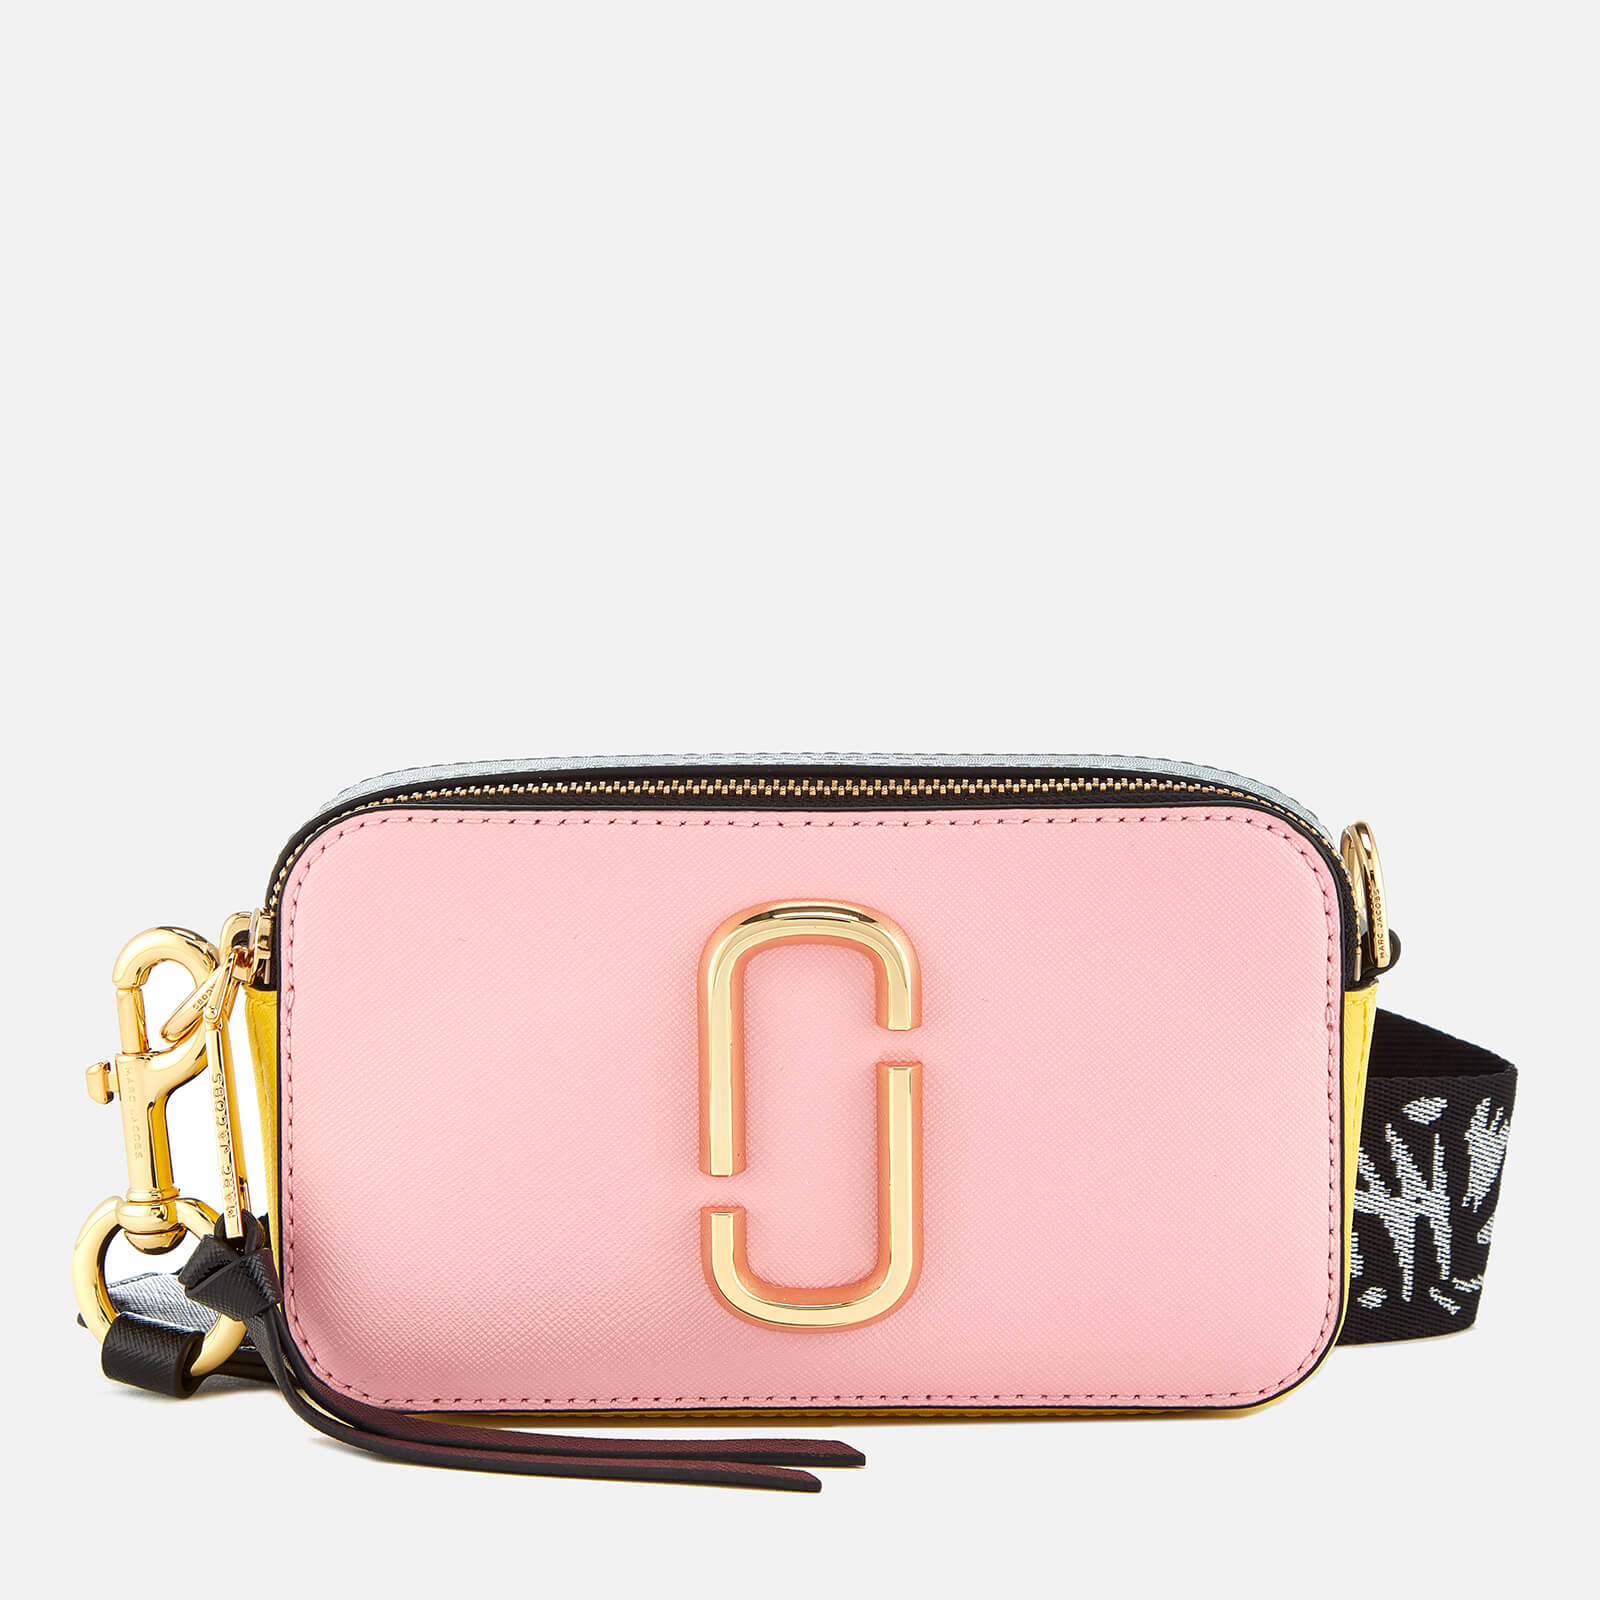 f129d52e9d99 Marc Jacobs Women s Snapshot Cross Body Bag - Baby Pink - Free UK Delivery  over £50